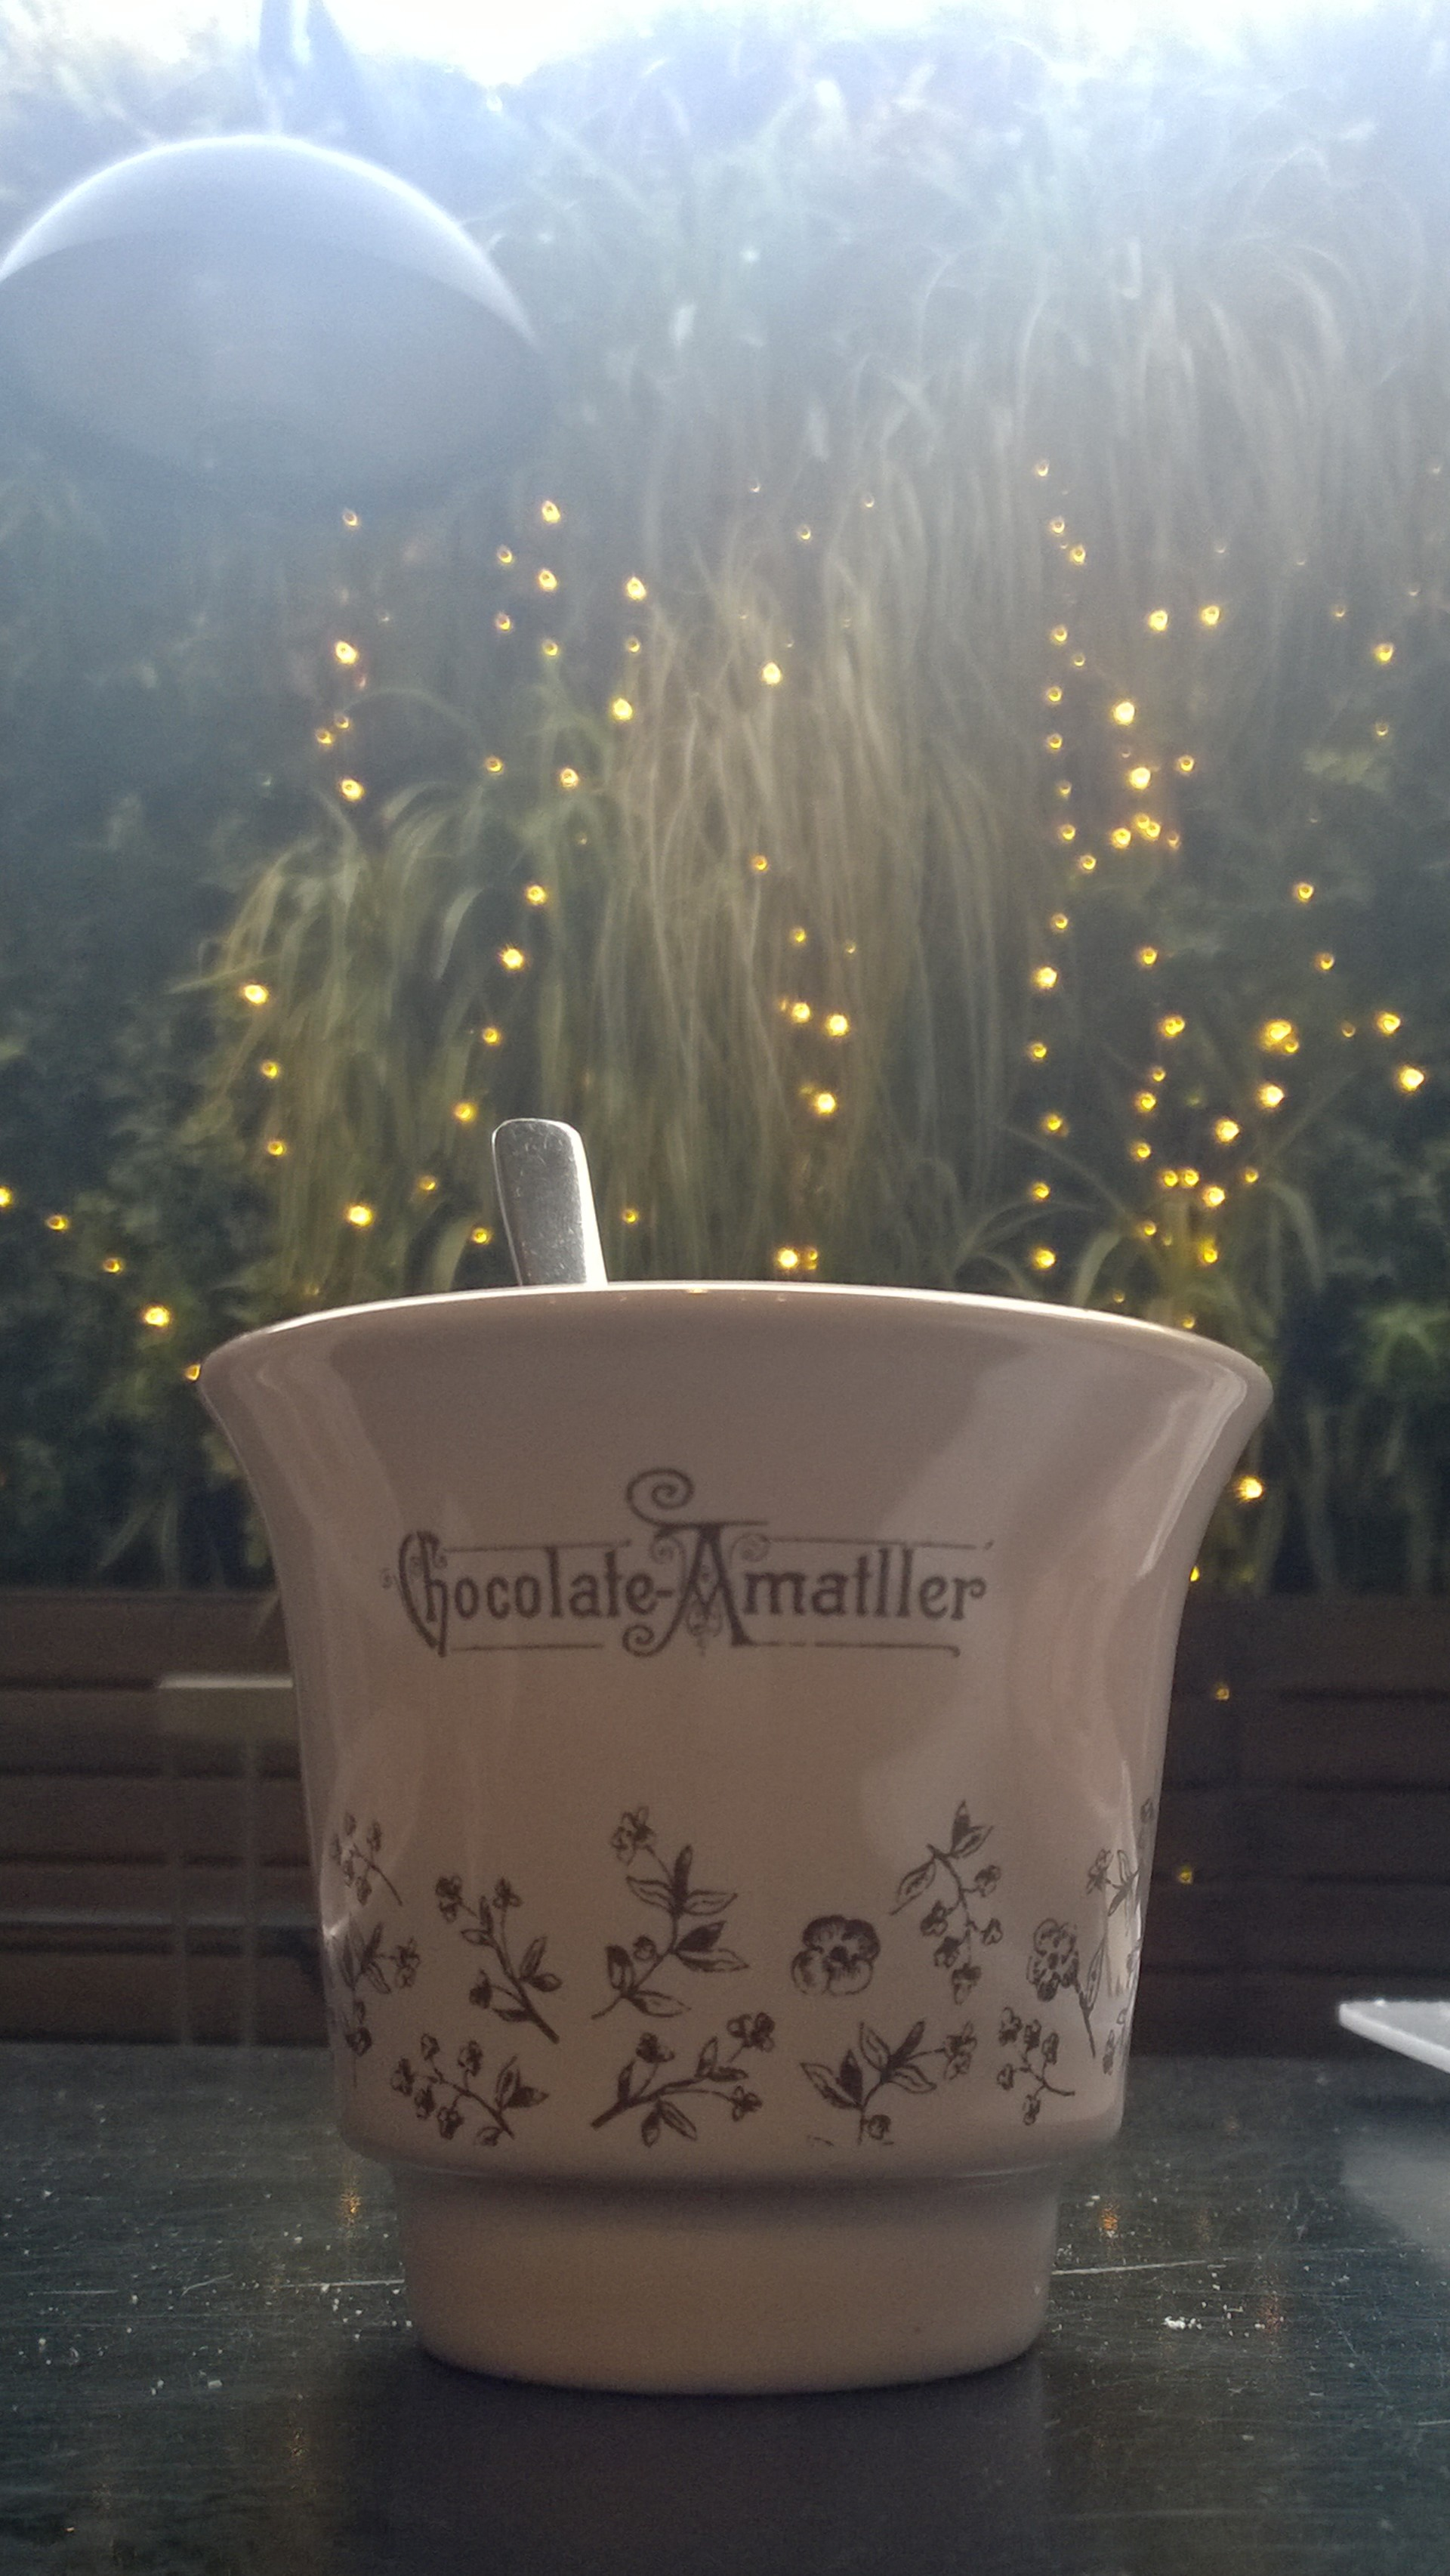 The best hot chocolate in Barcelona: Chocolate Amatller